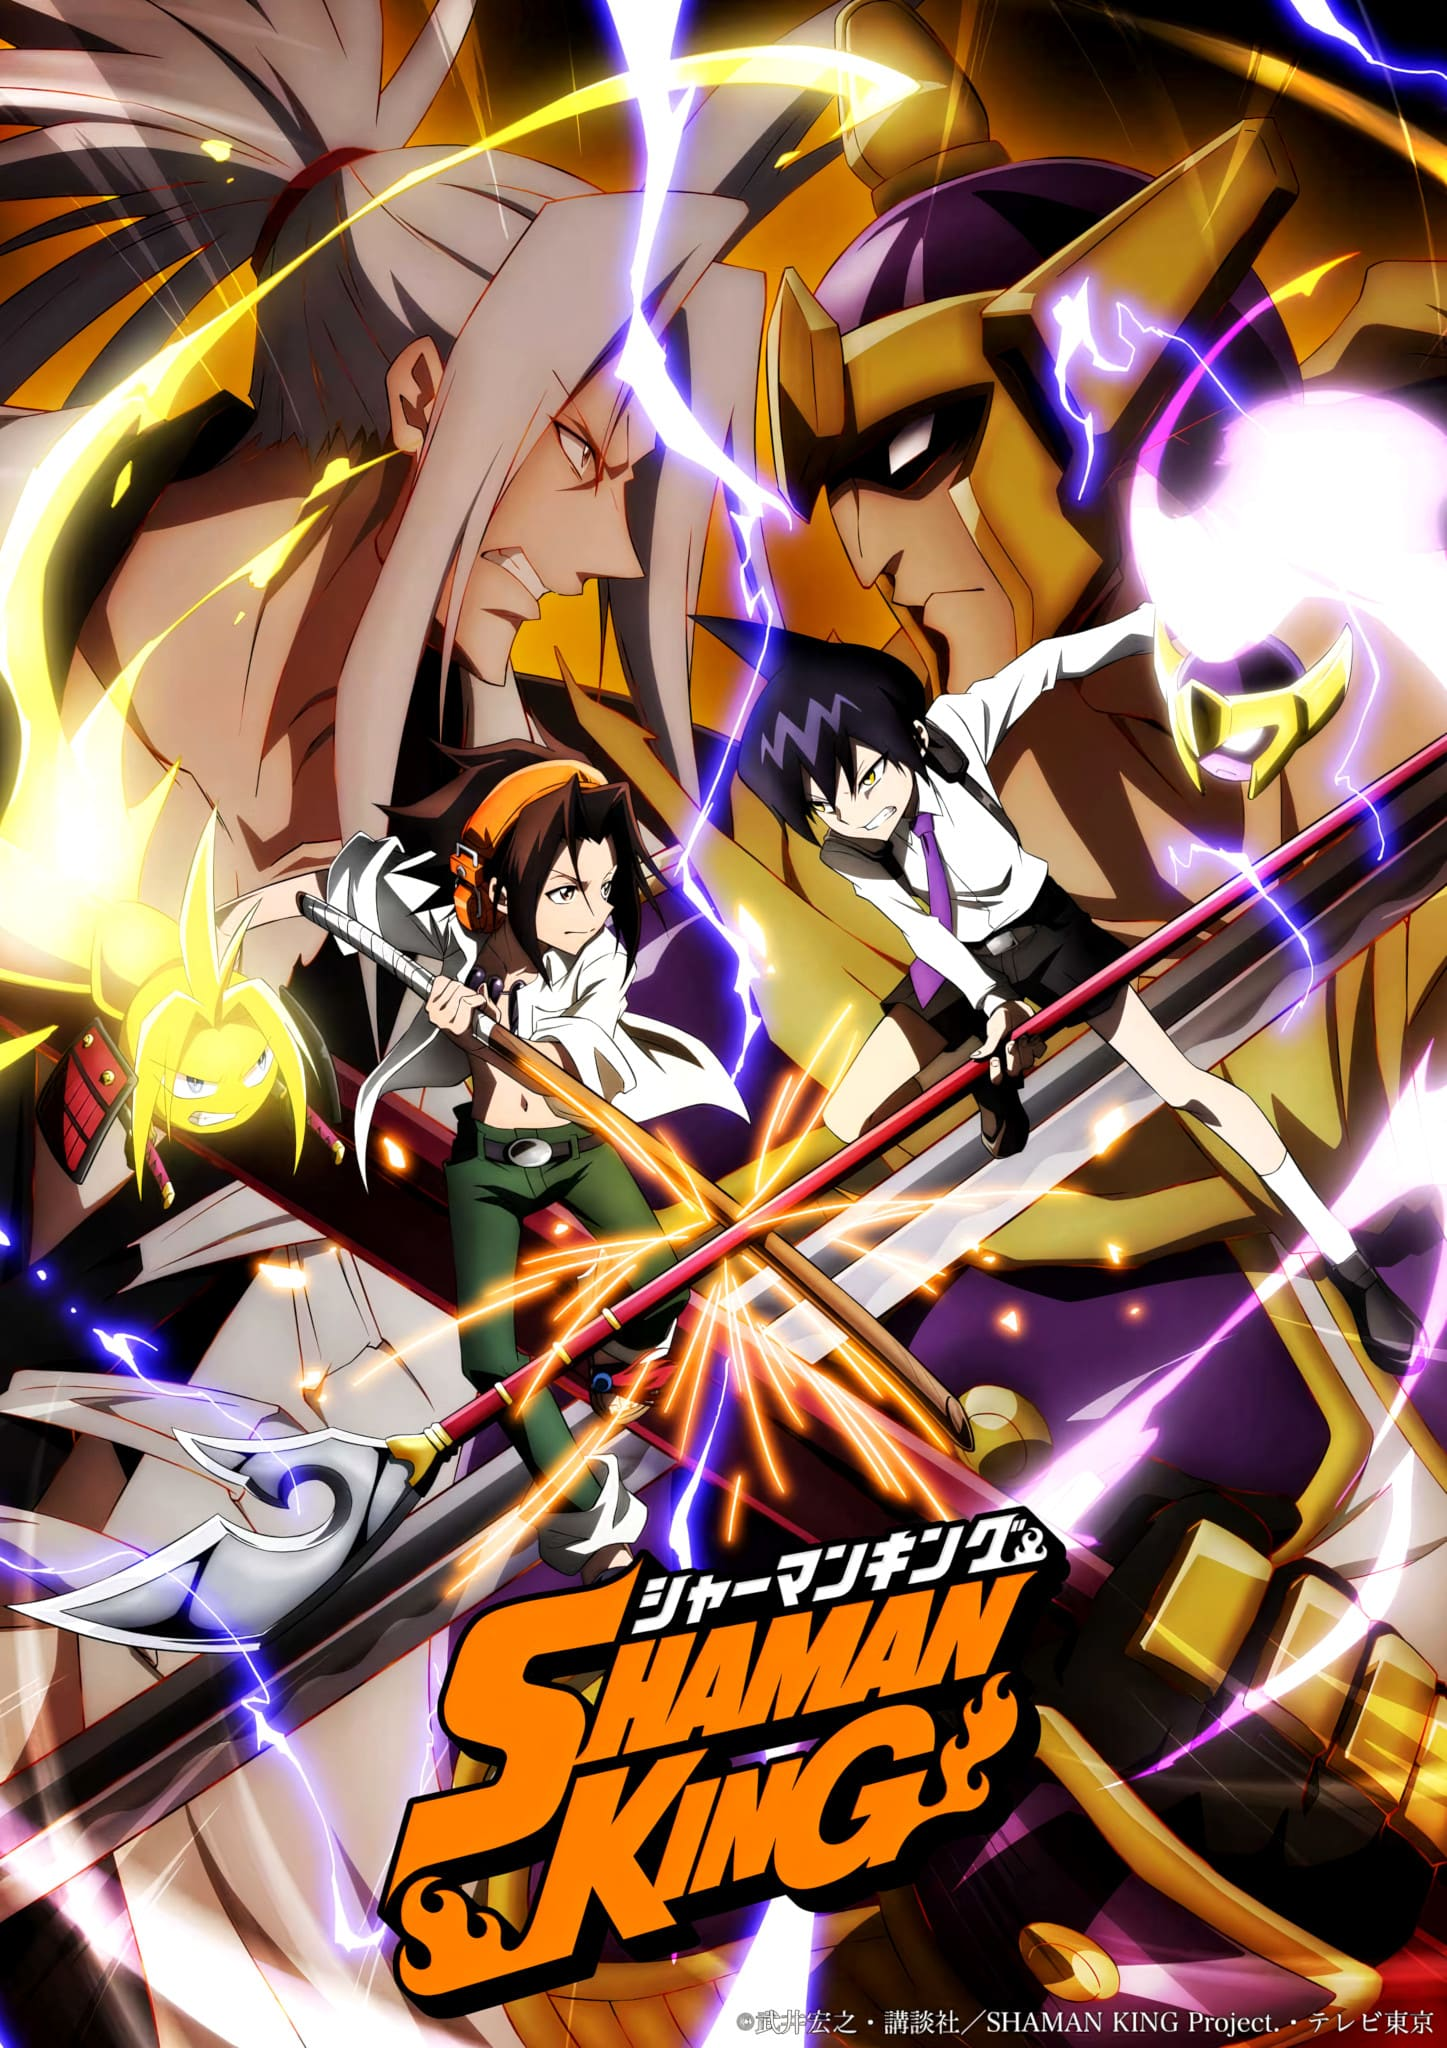 Ny Shaman King anime trailer 1